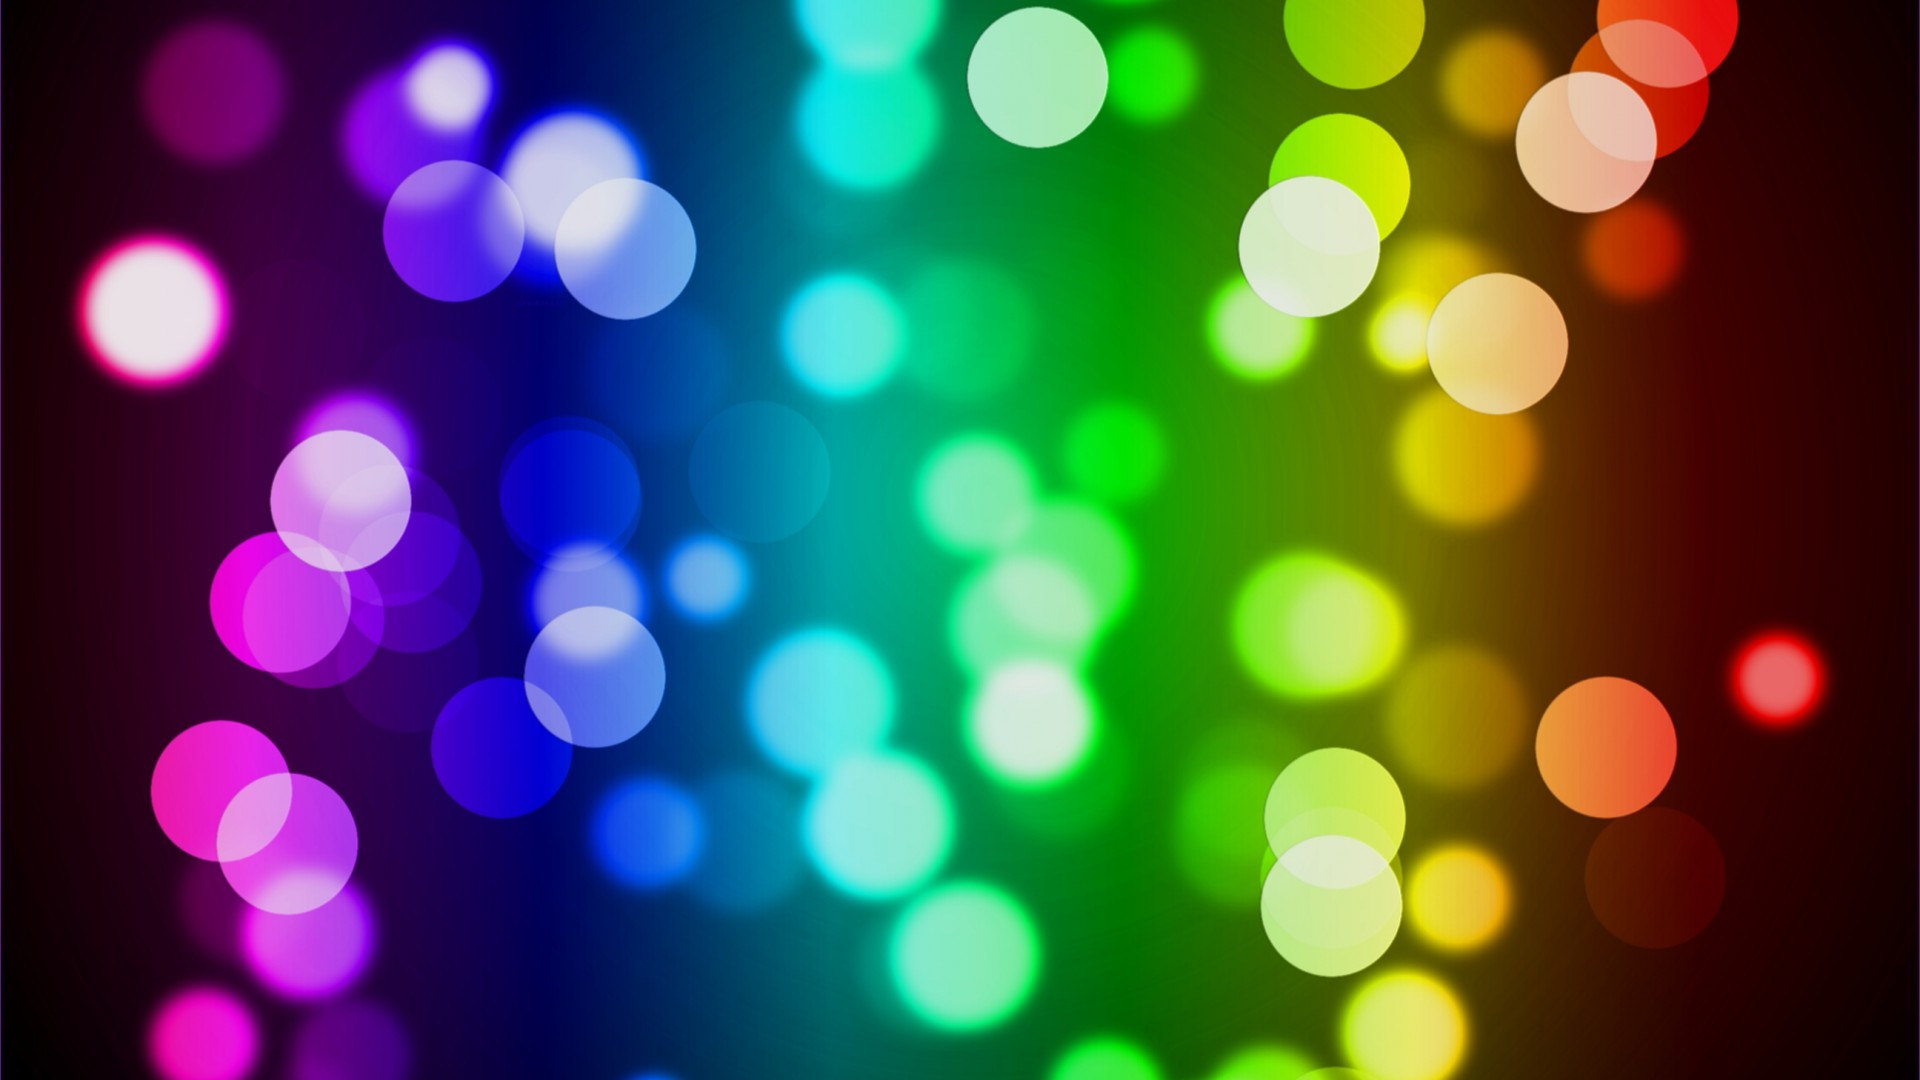 Cool Colorful Wallpaper Backgrounds: Cool Colorful Wallpaper Backgrounds